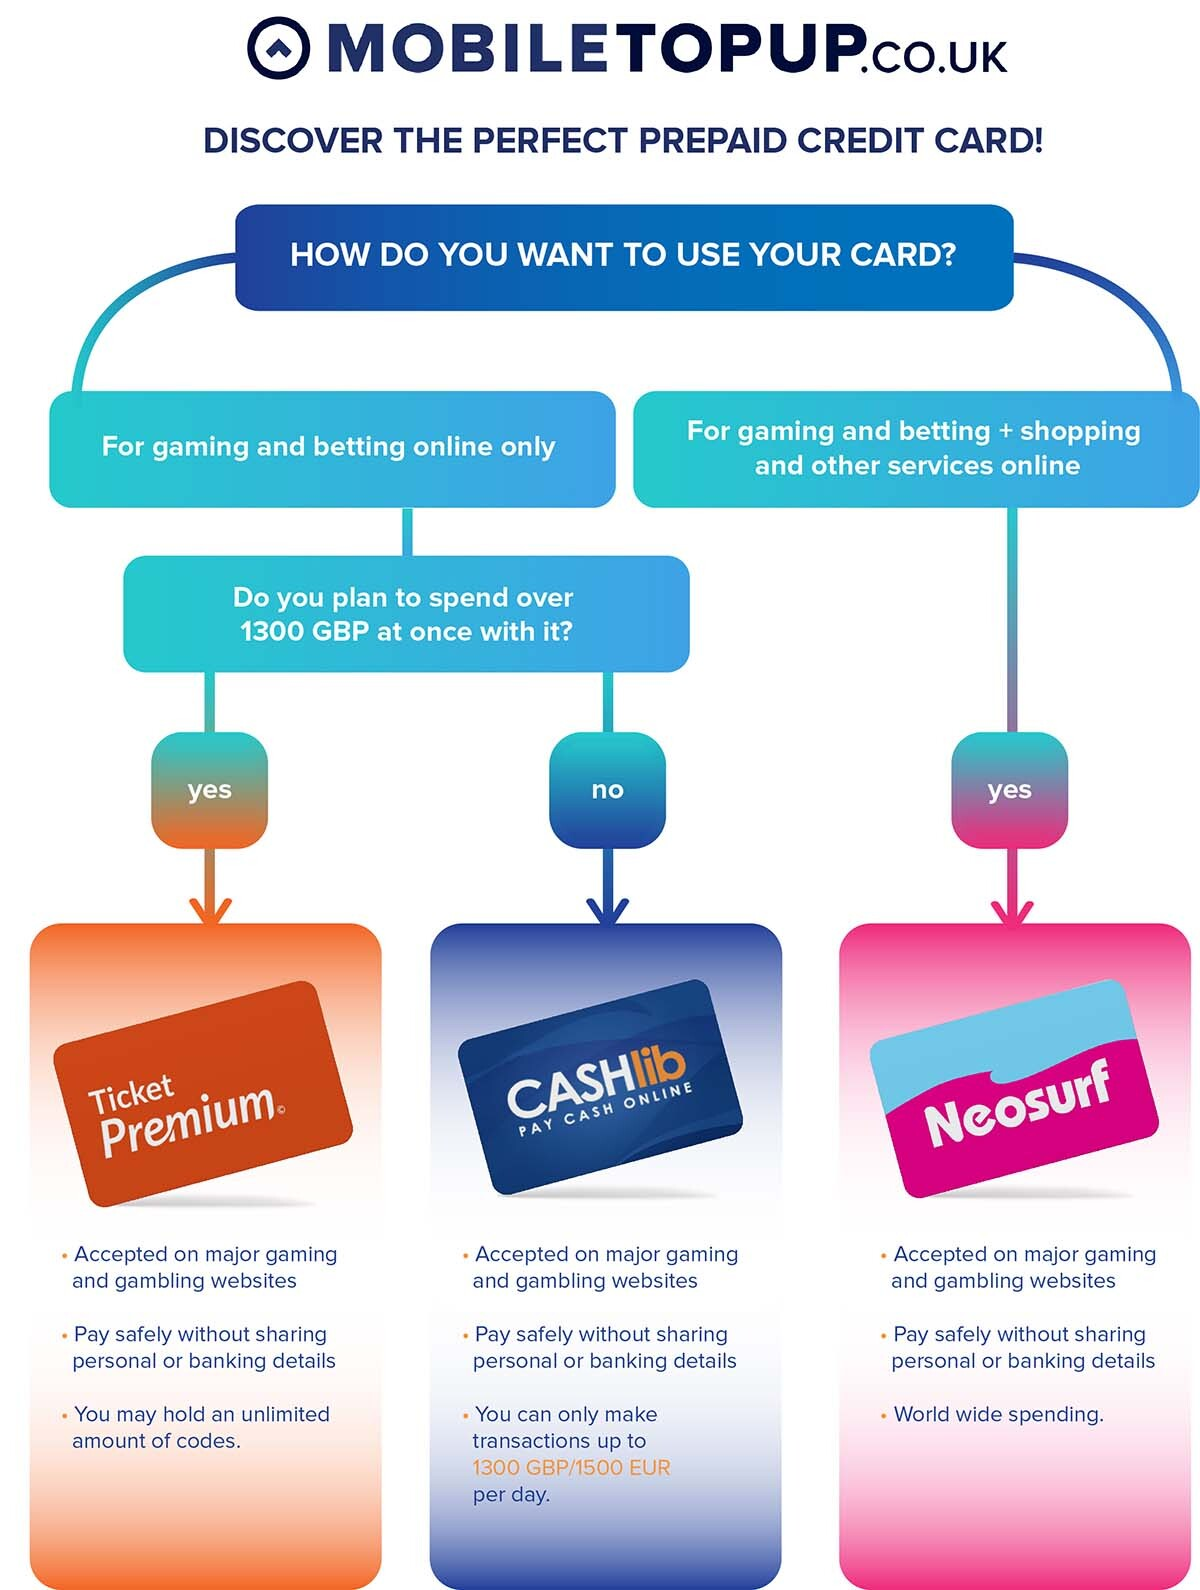 Compare prepaid credit cards for the best match